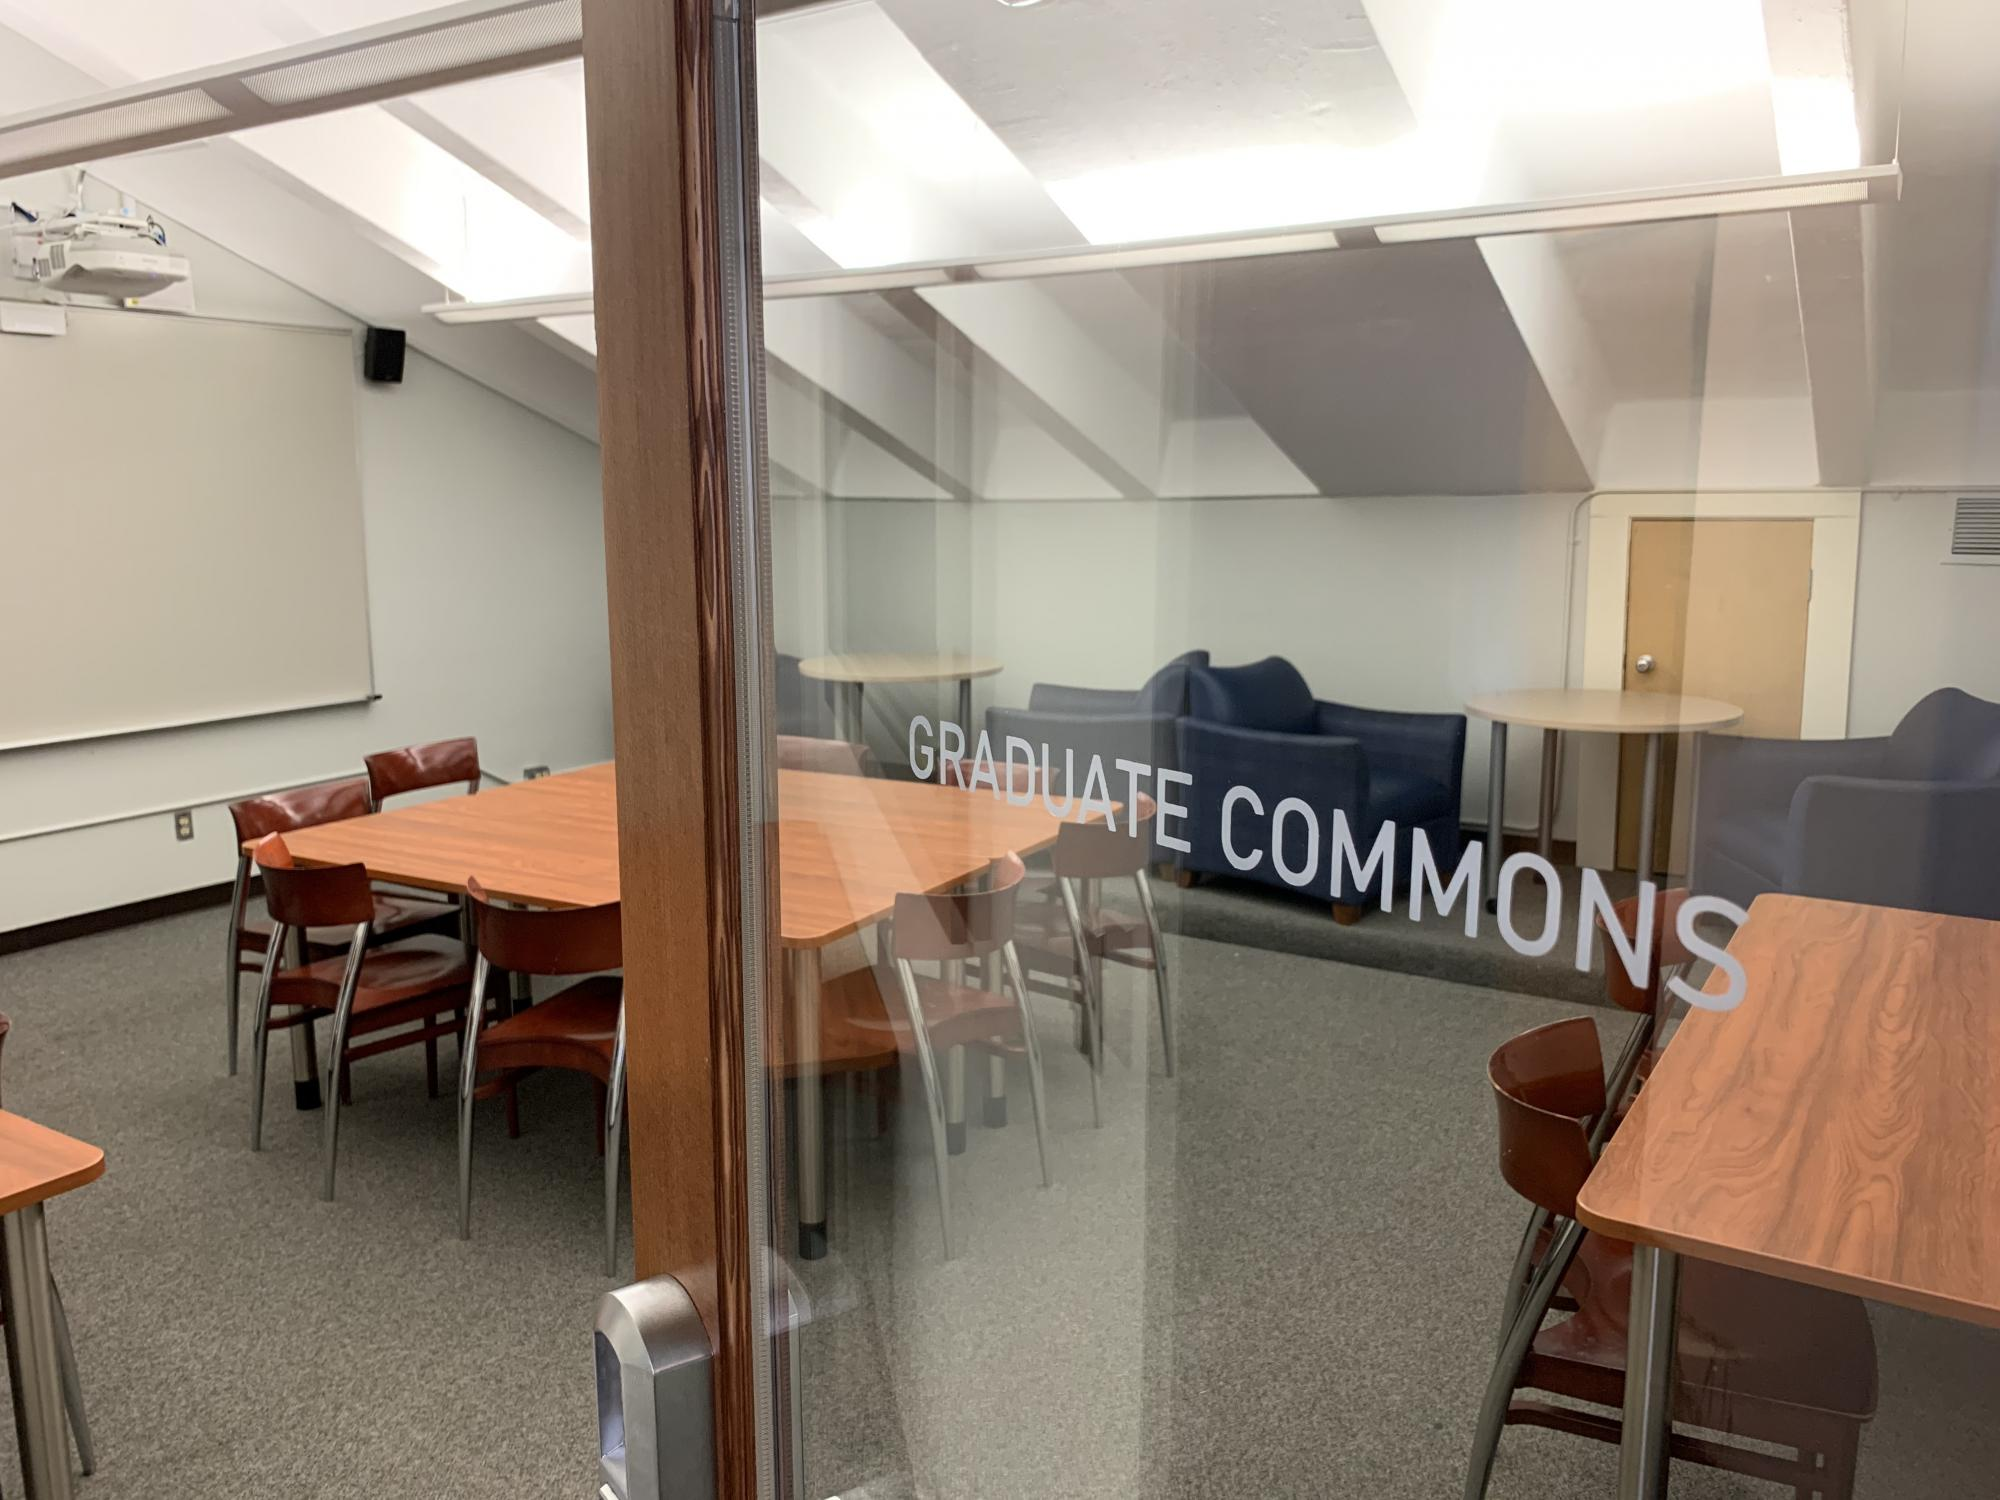 """Photo showing the graduate commons, including tables, chairs, lounge chairs, and a glass door labeled """"graduate commons"""""""